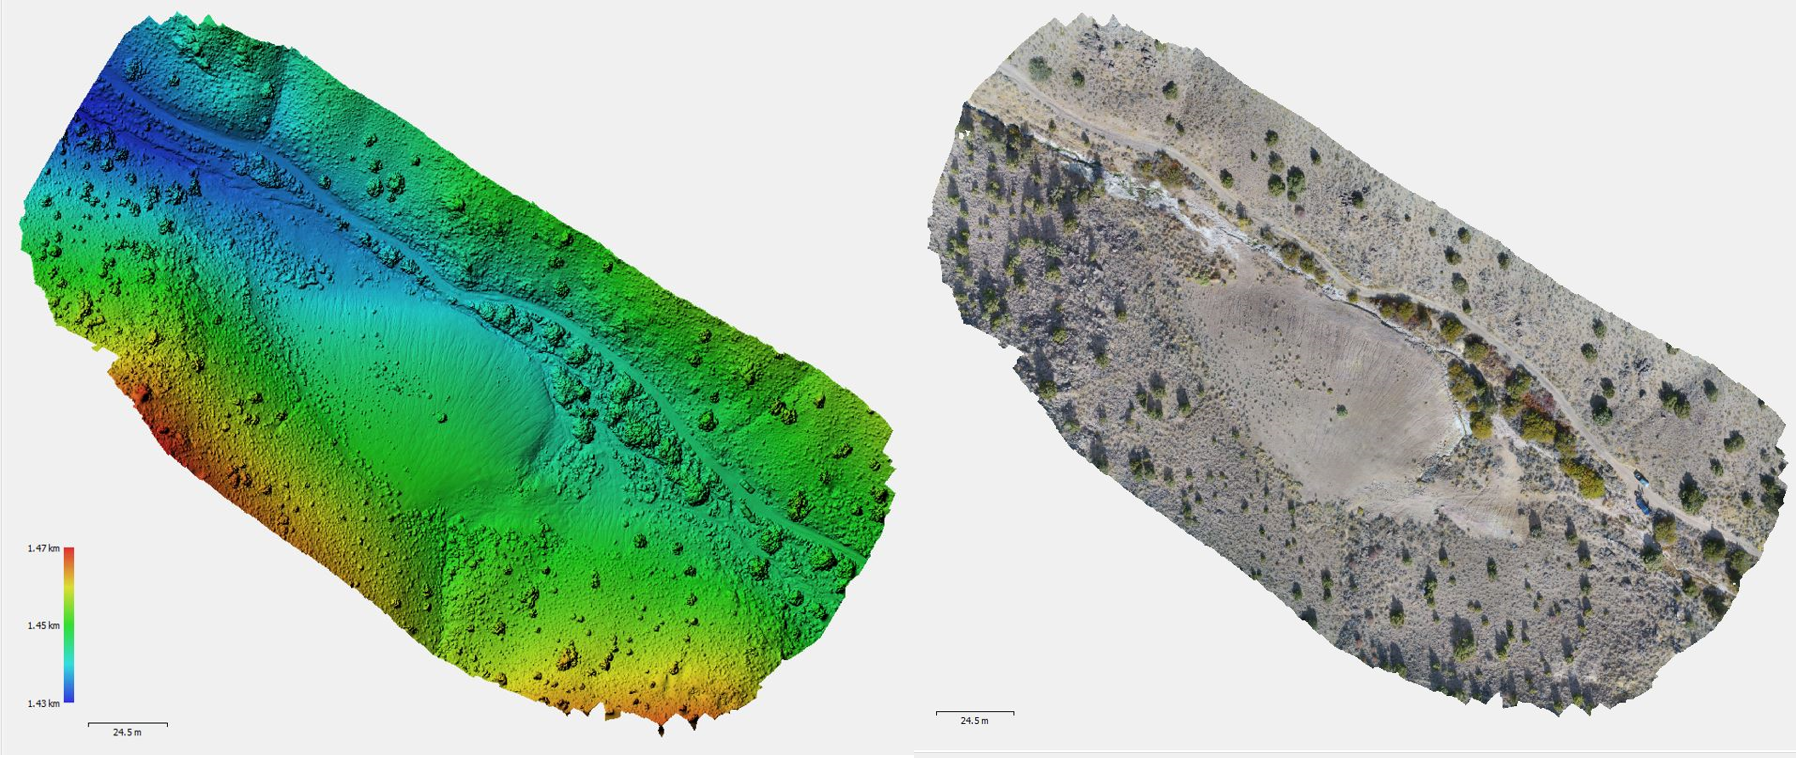 Digital elevation model (left) and RGB image (right) of Perry Canyon study site